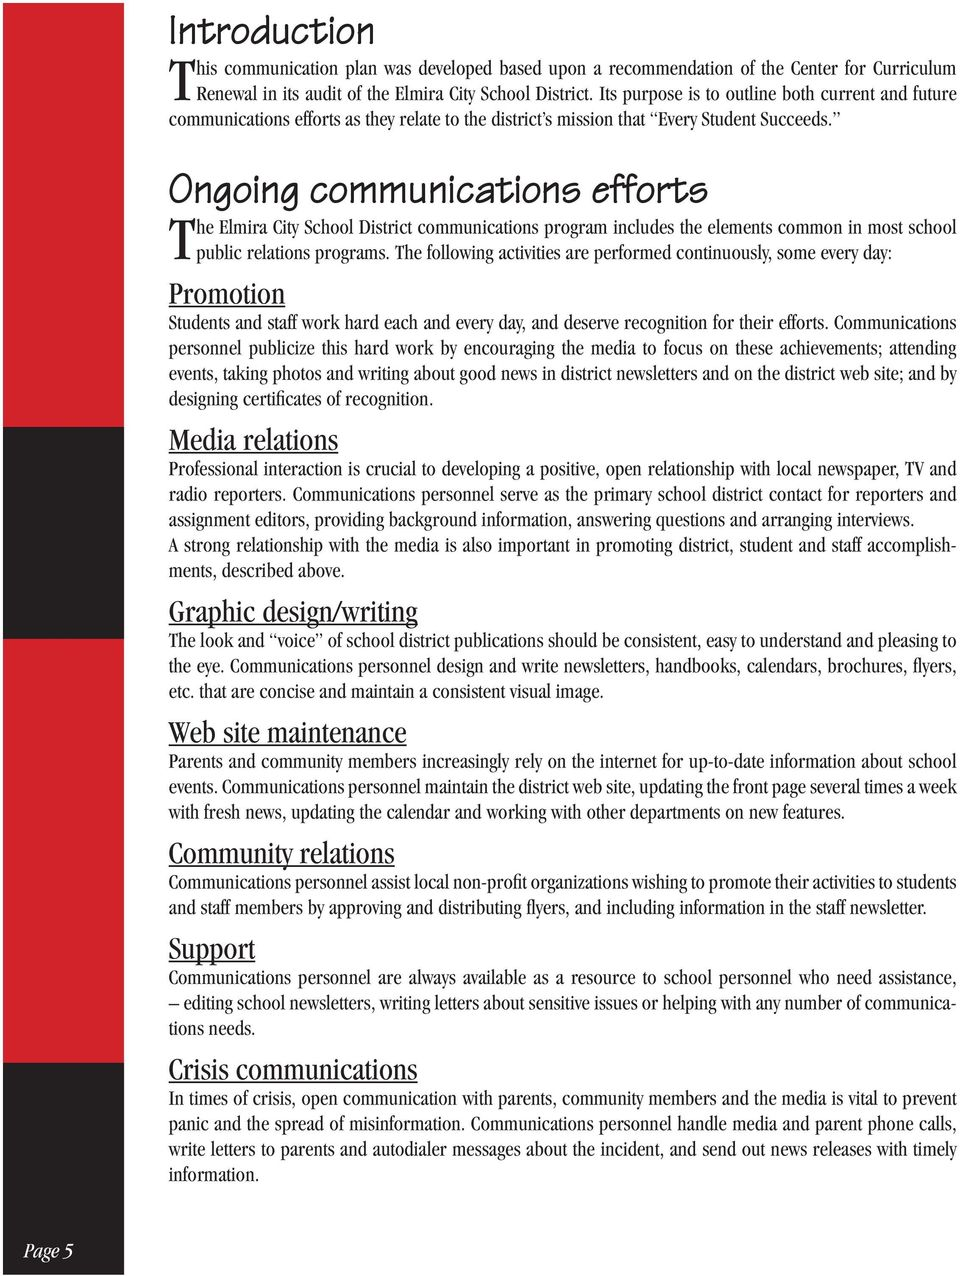 Ongoing communications efforts The Elmira City School District communications program includes the elements common in most school public relations programs.